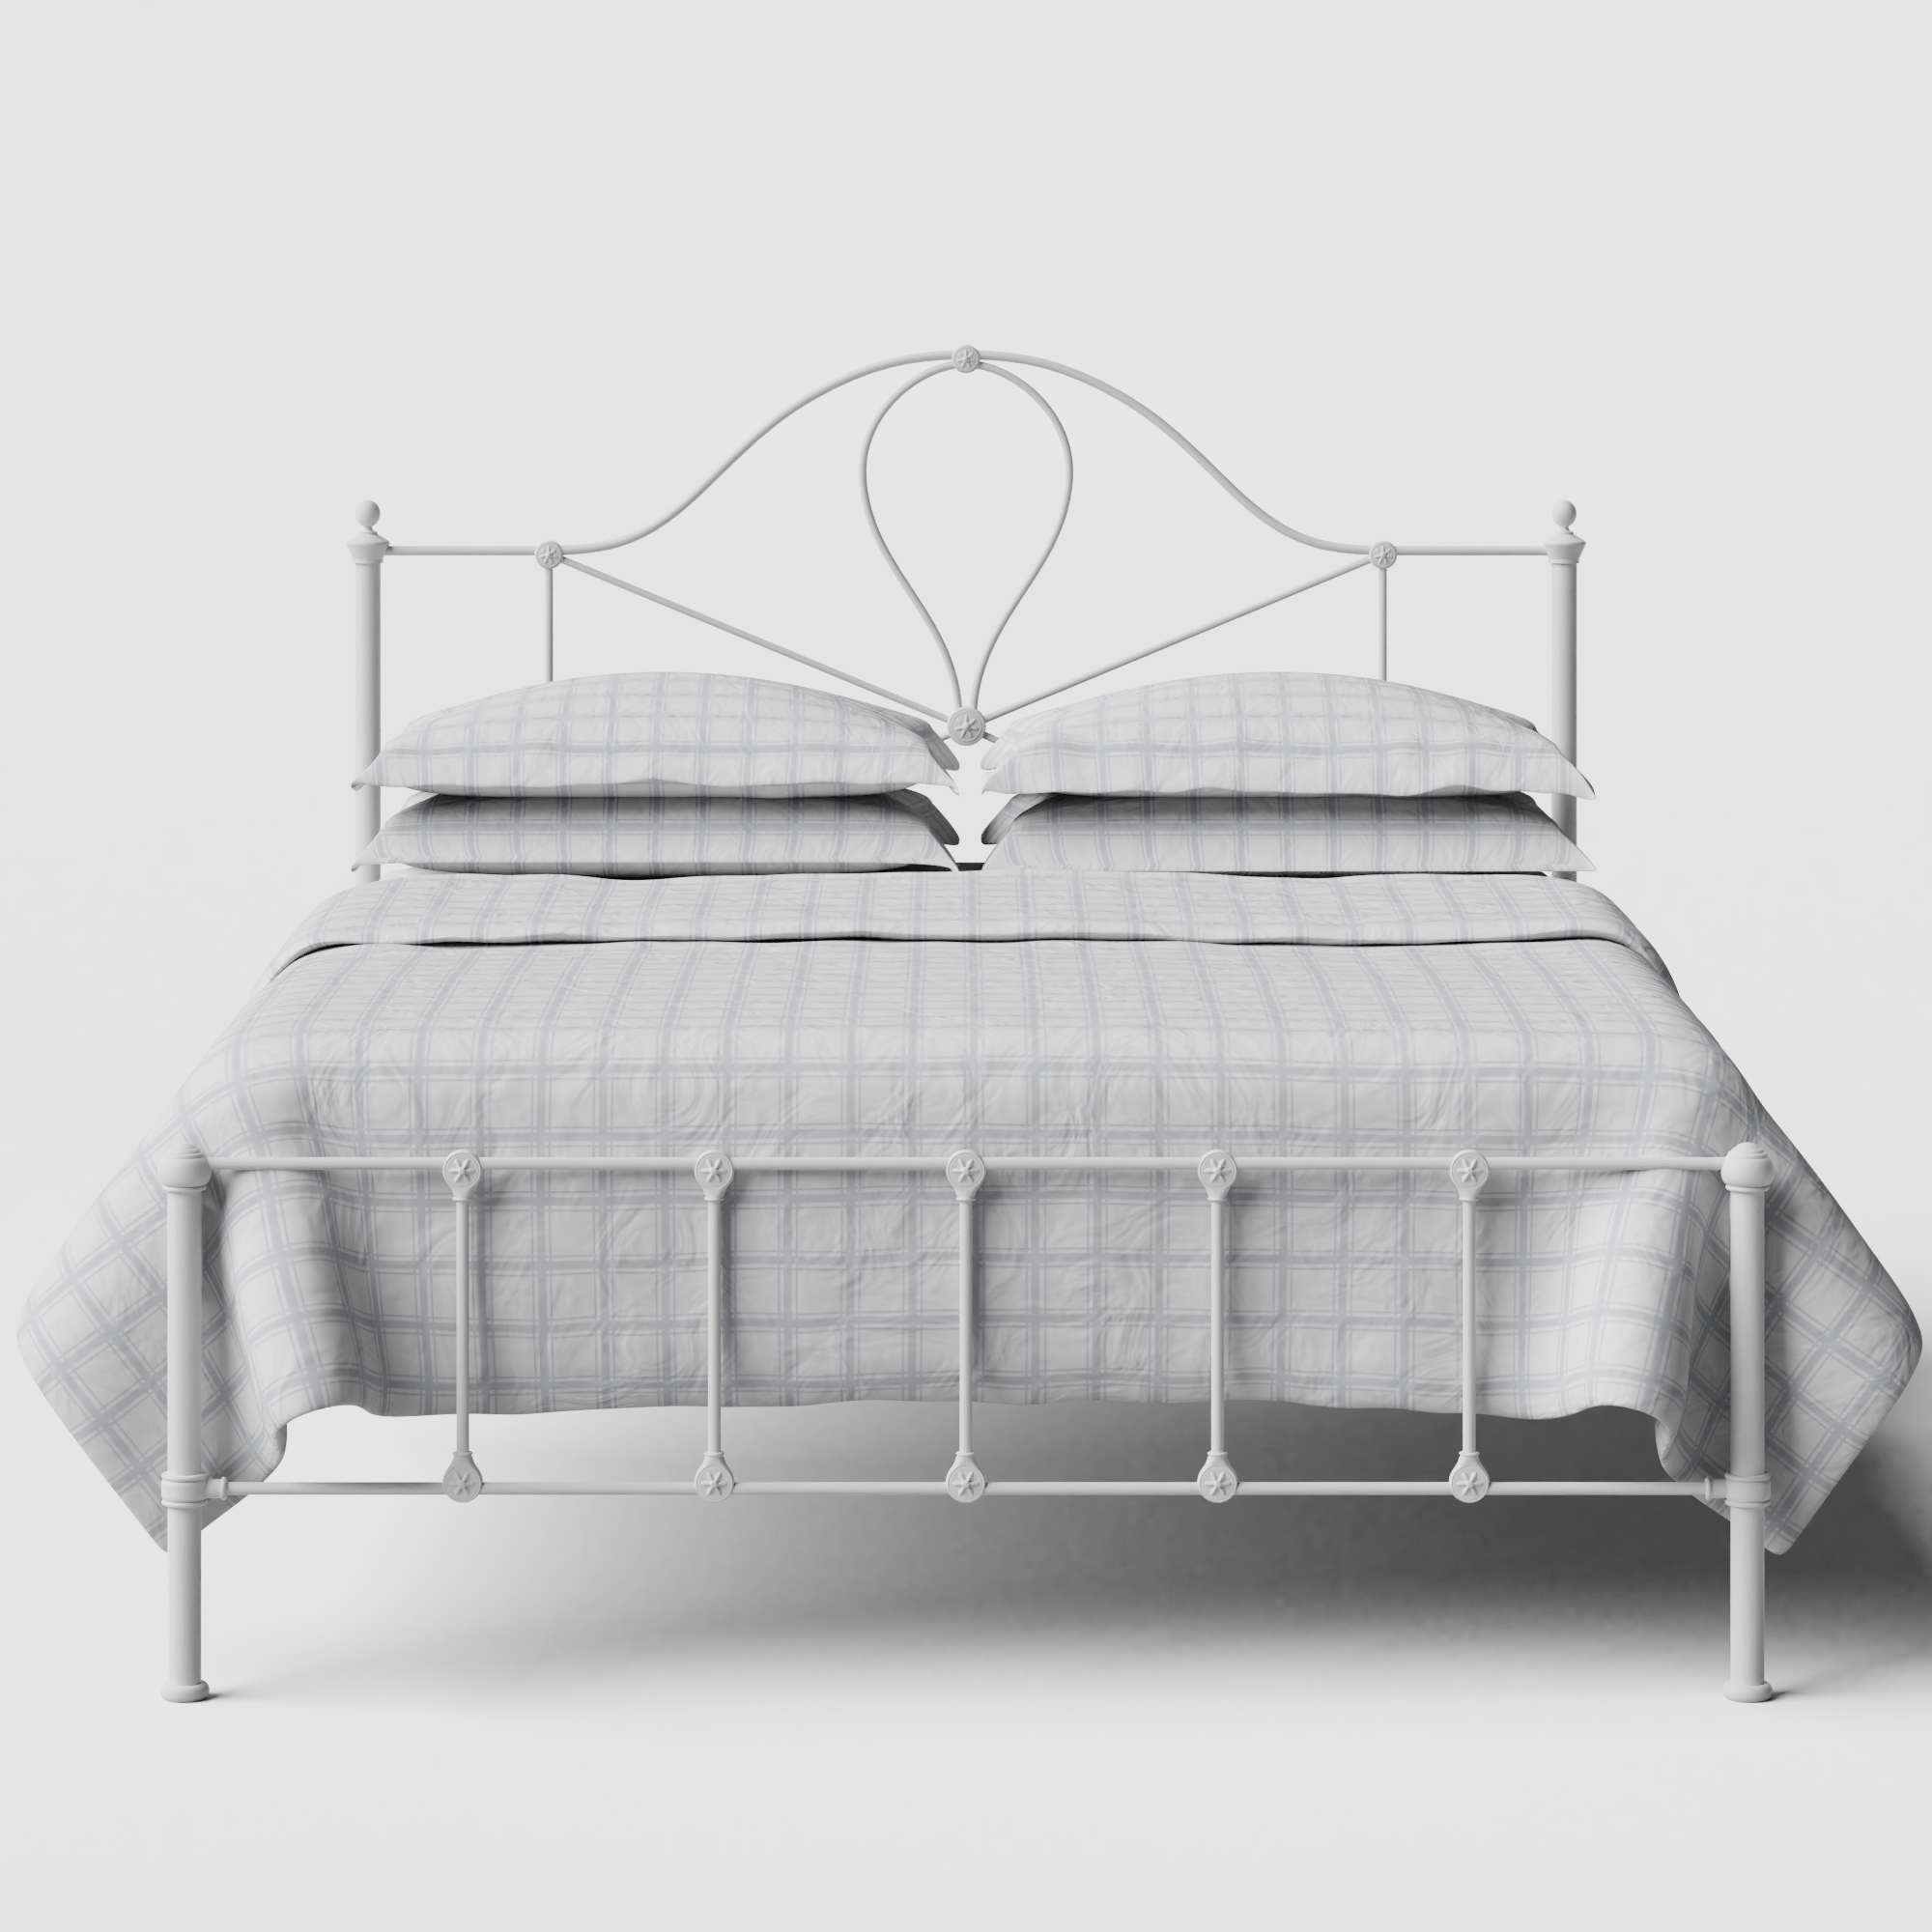 Athena iron/metal bed in white